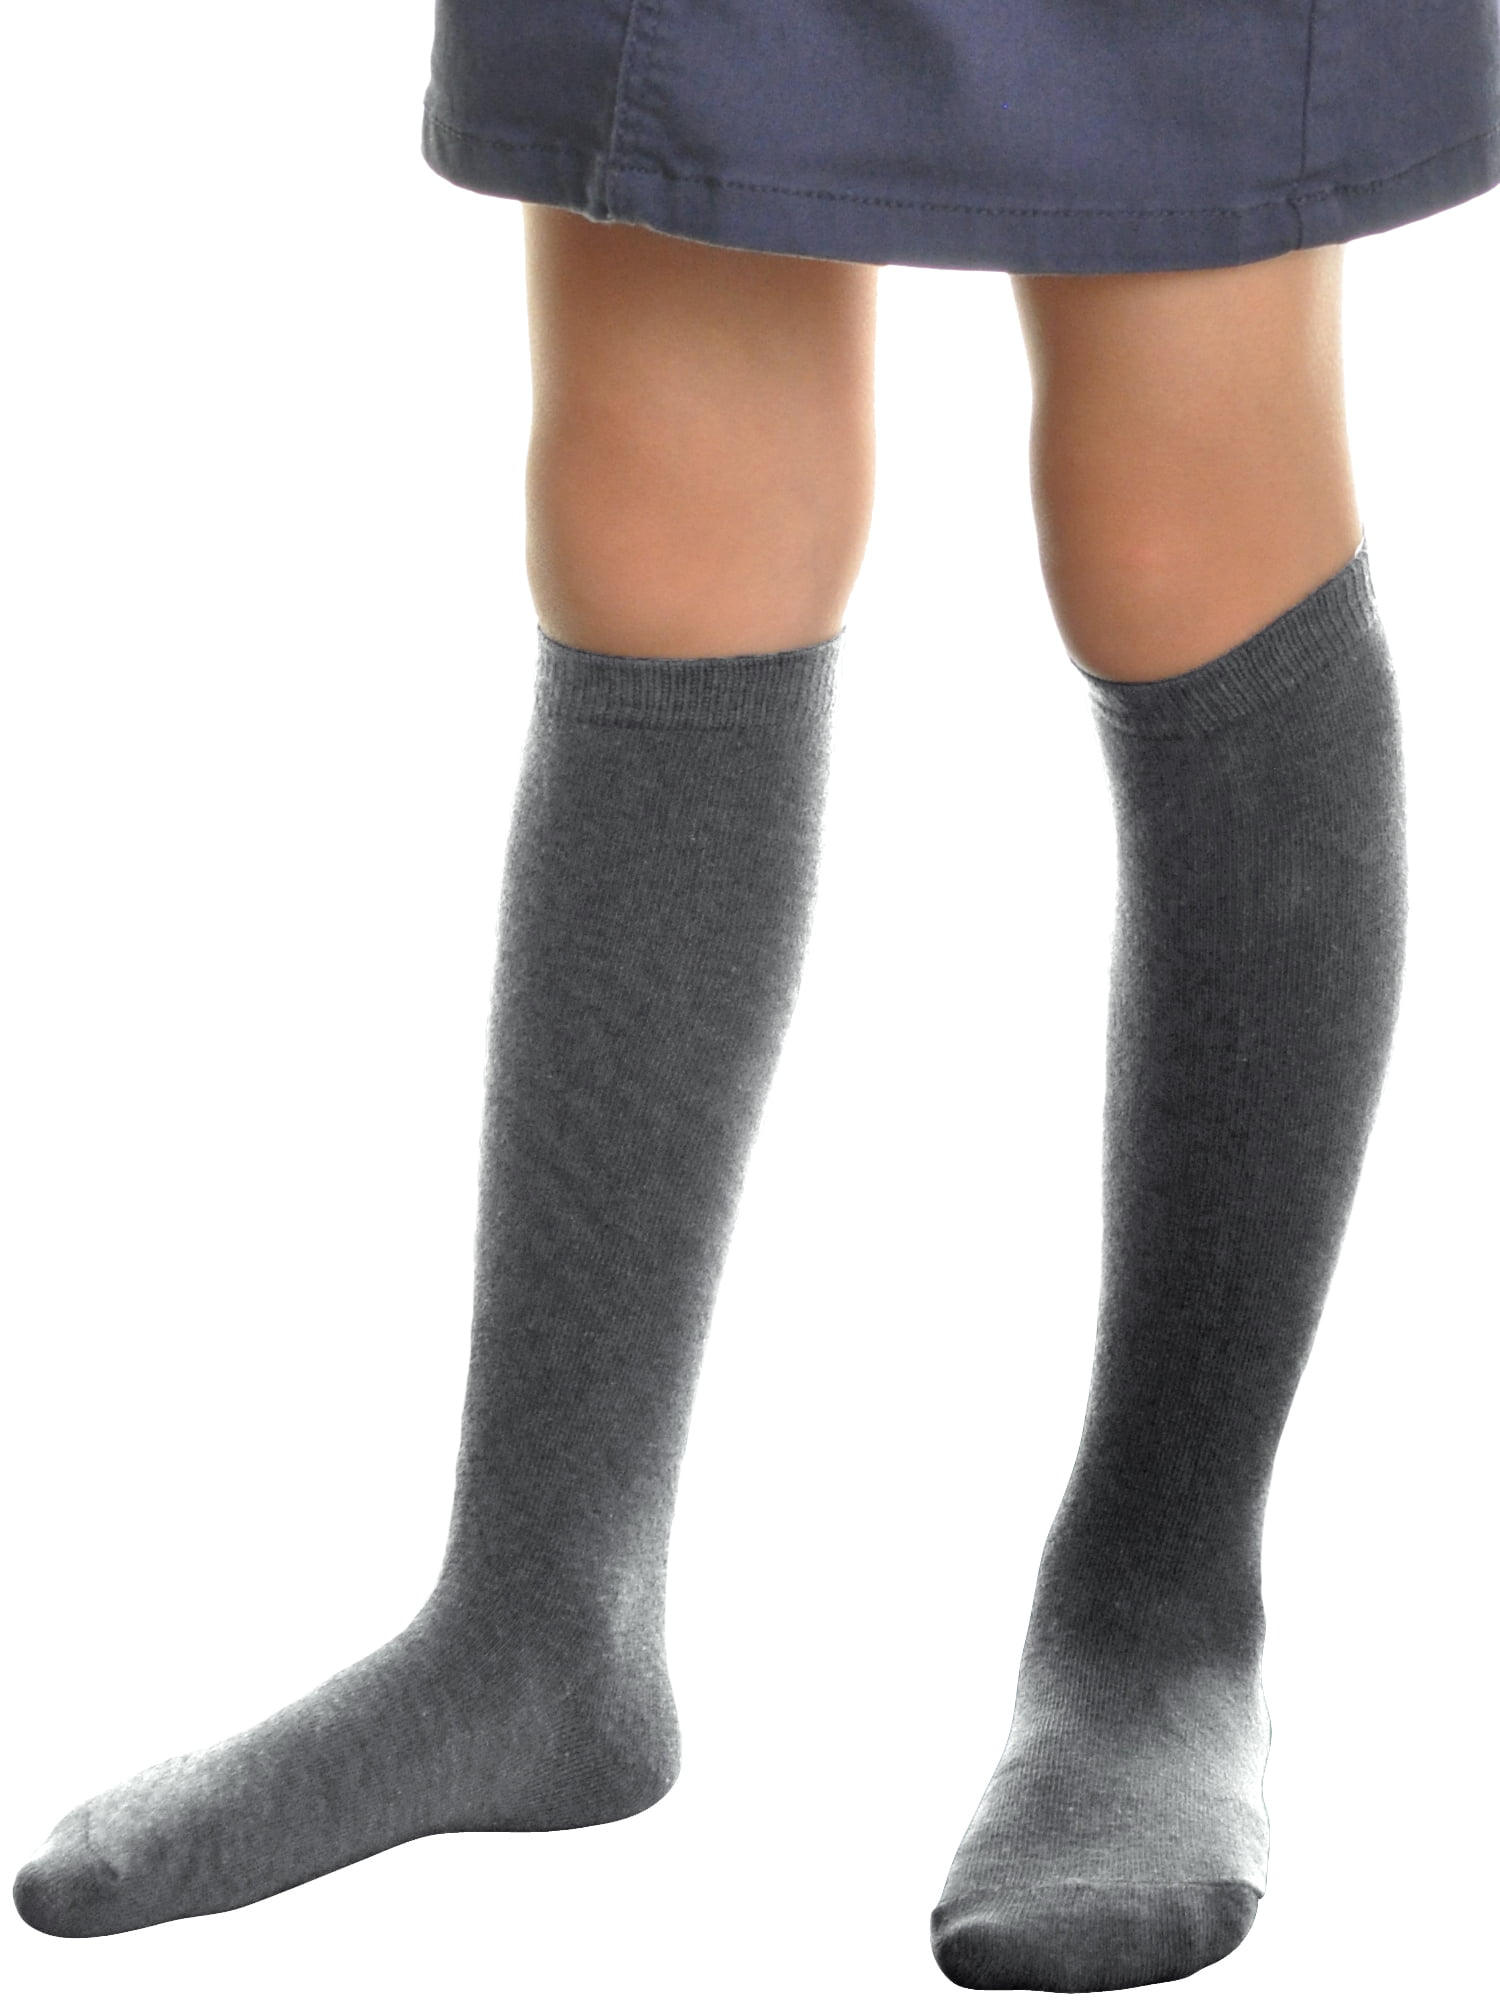 or 12 Pairs Girls Knee High School Socks With Bow All Size in 10 Colors 6 3